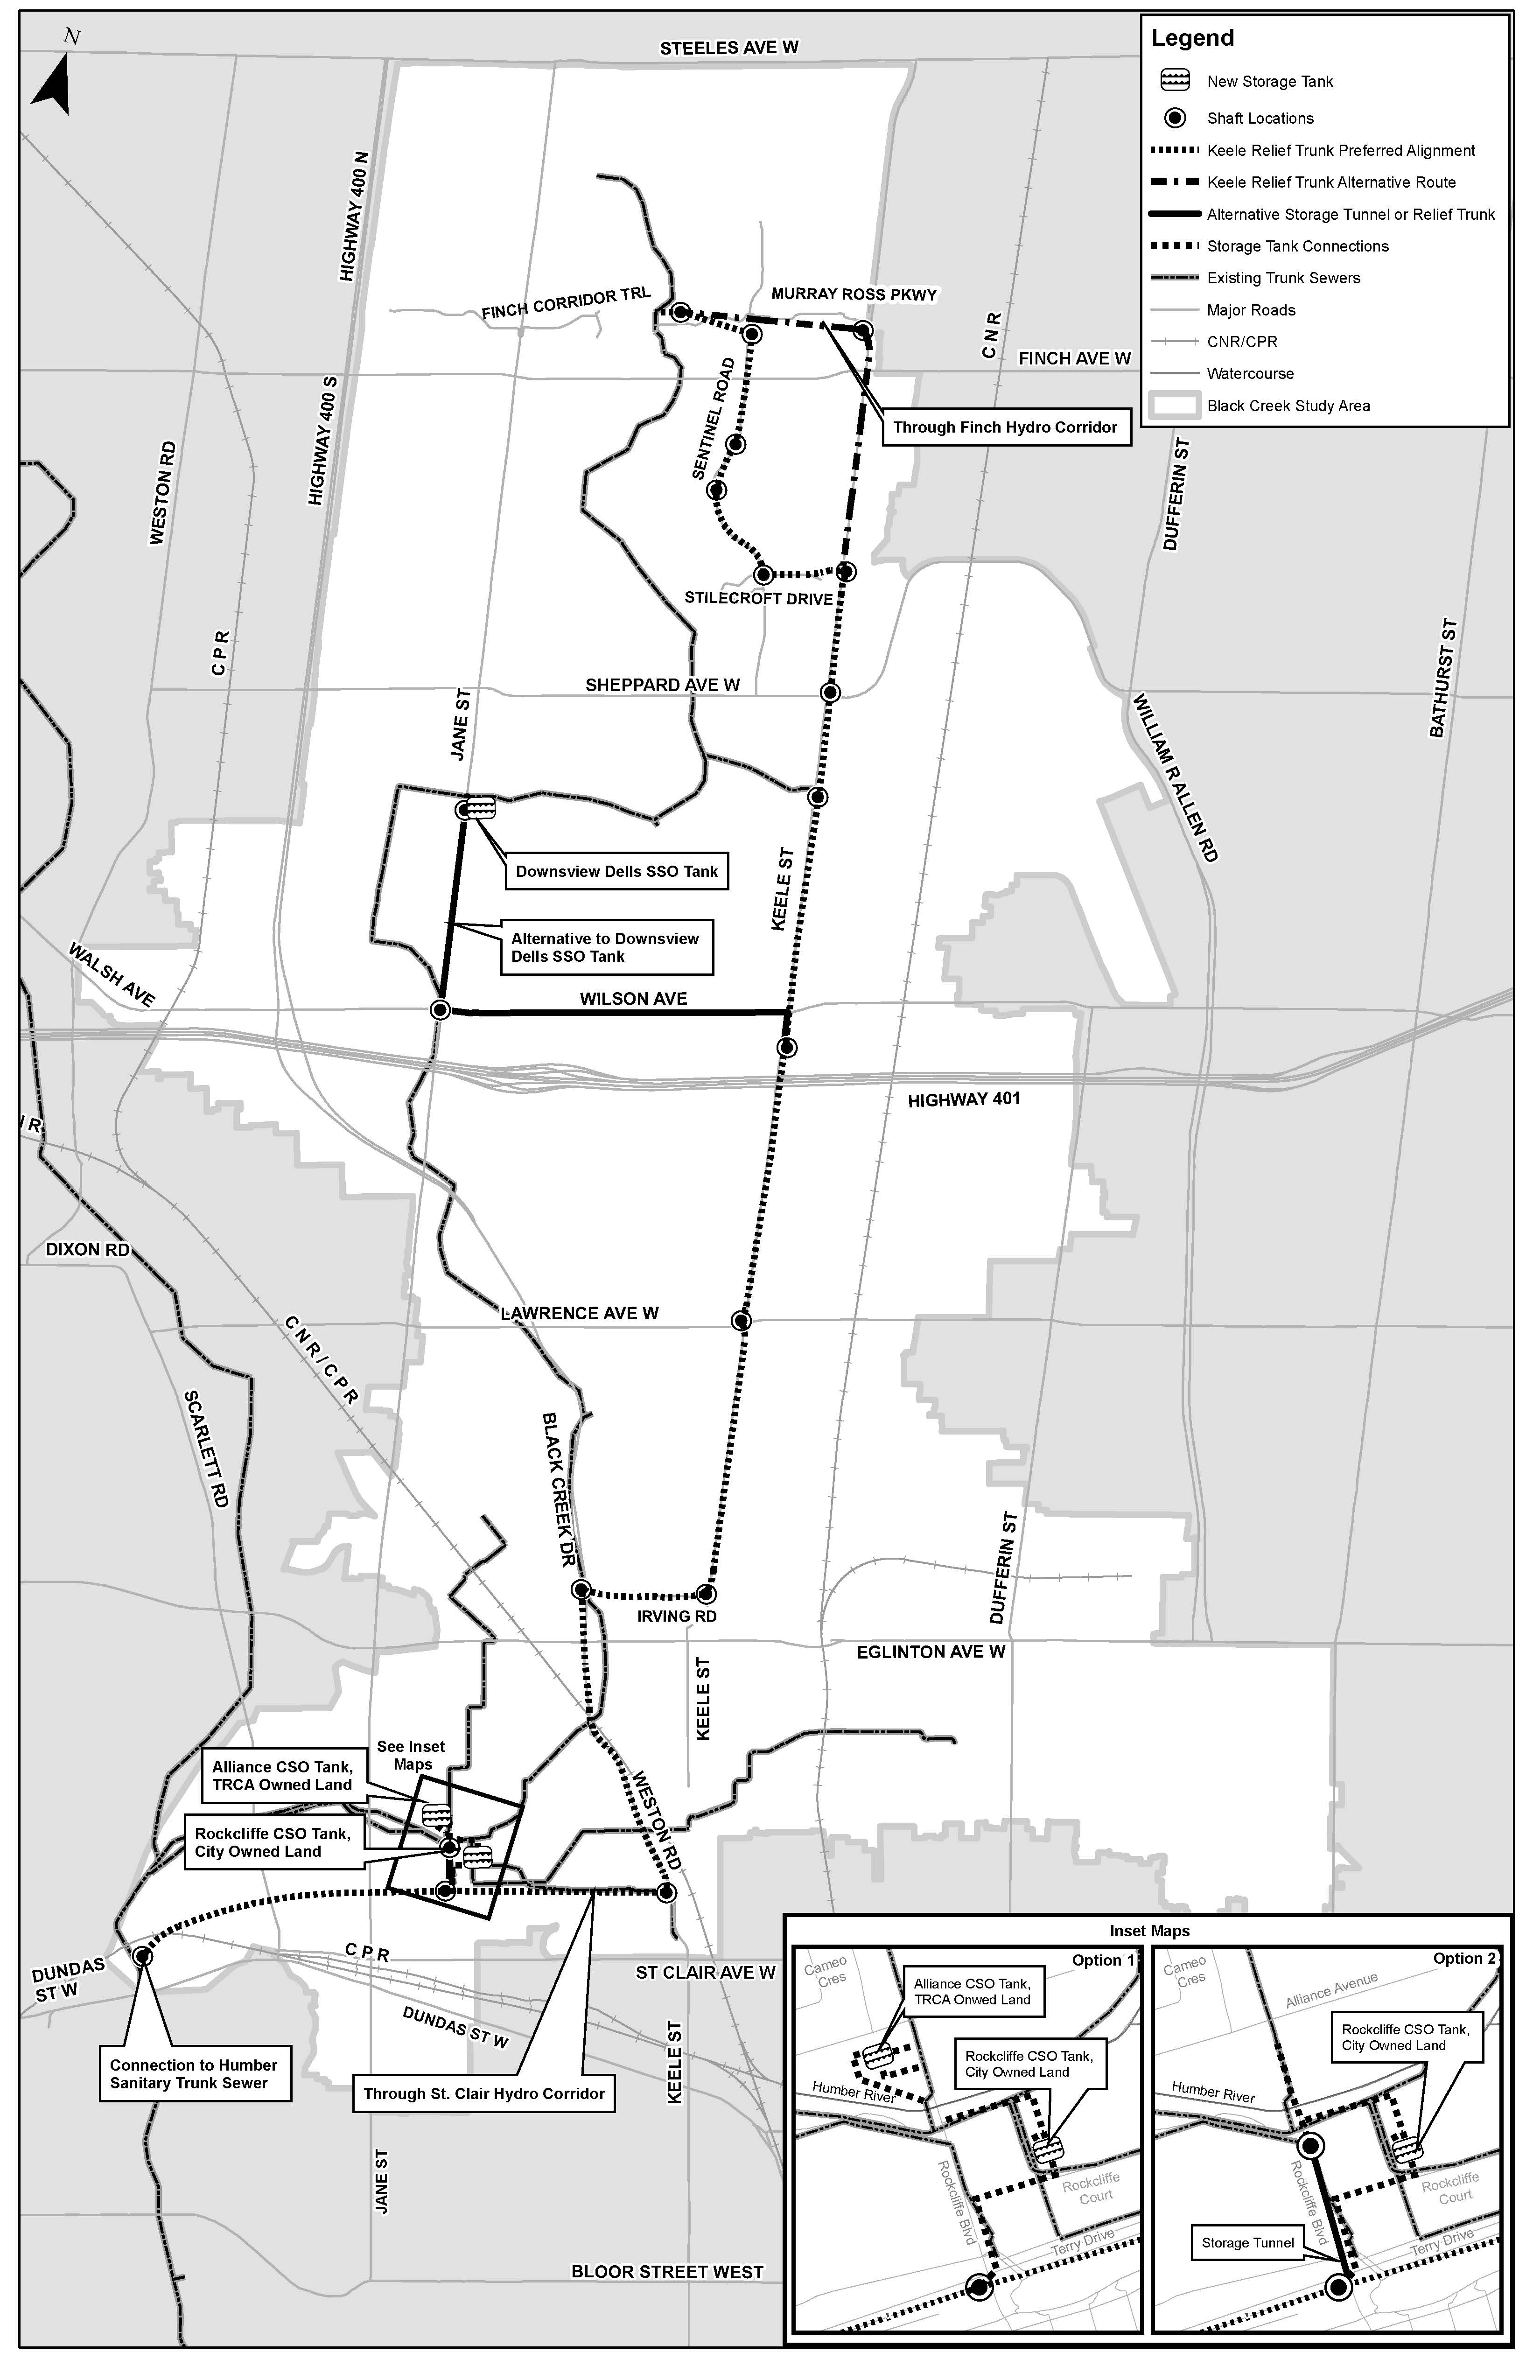 Black Creek STS Study Area Map